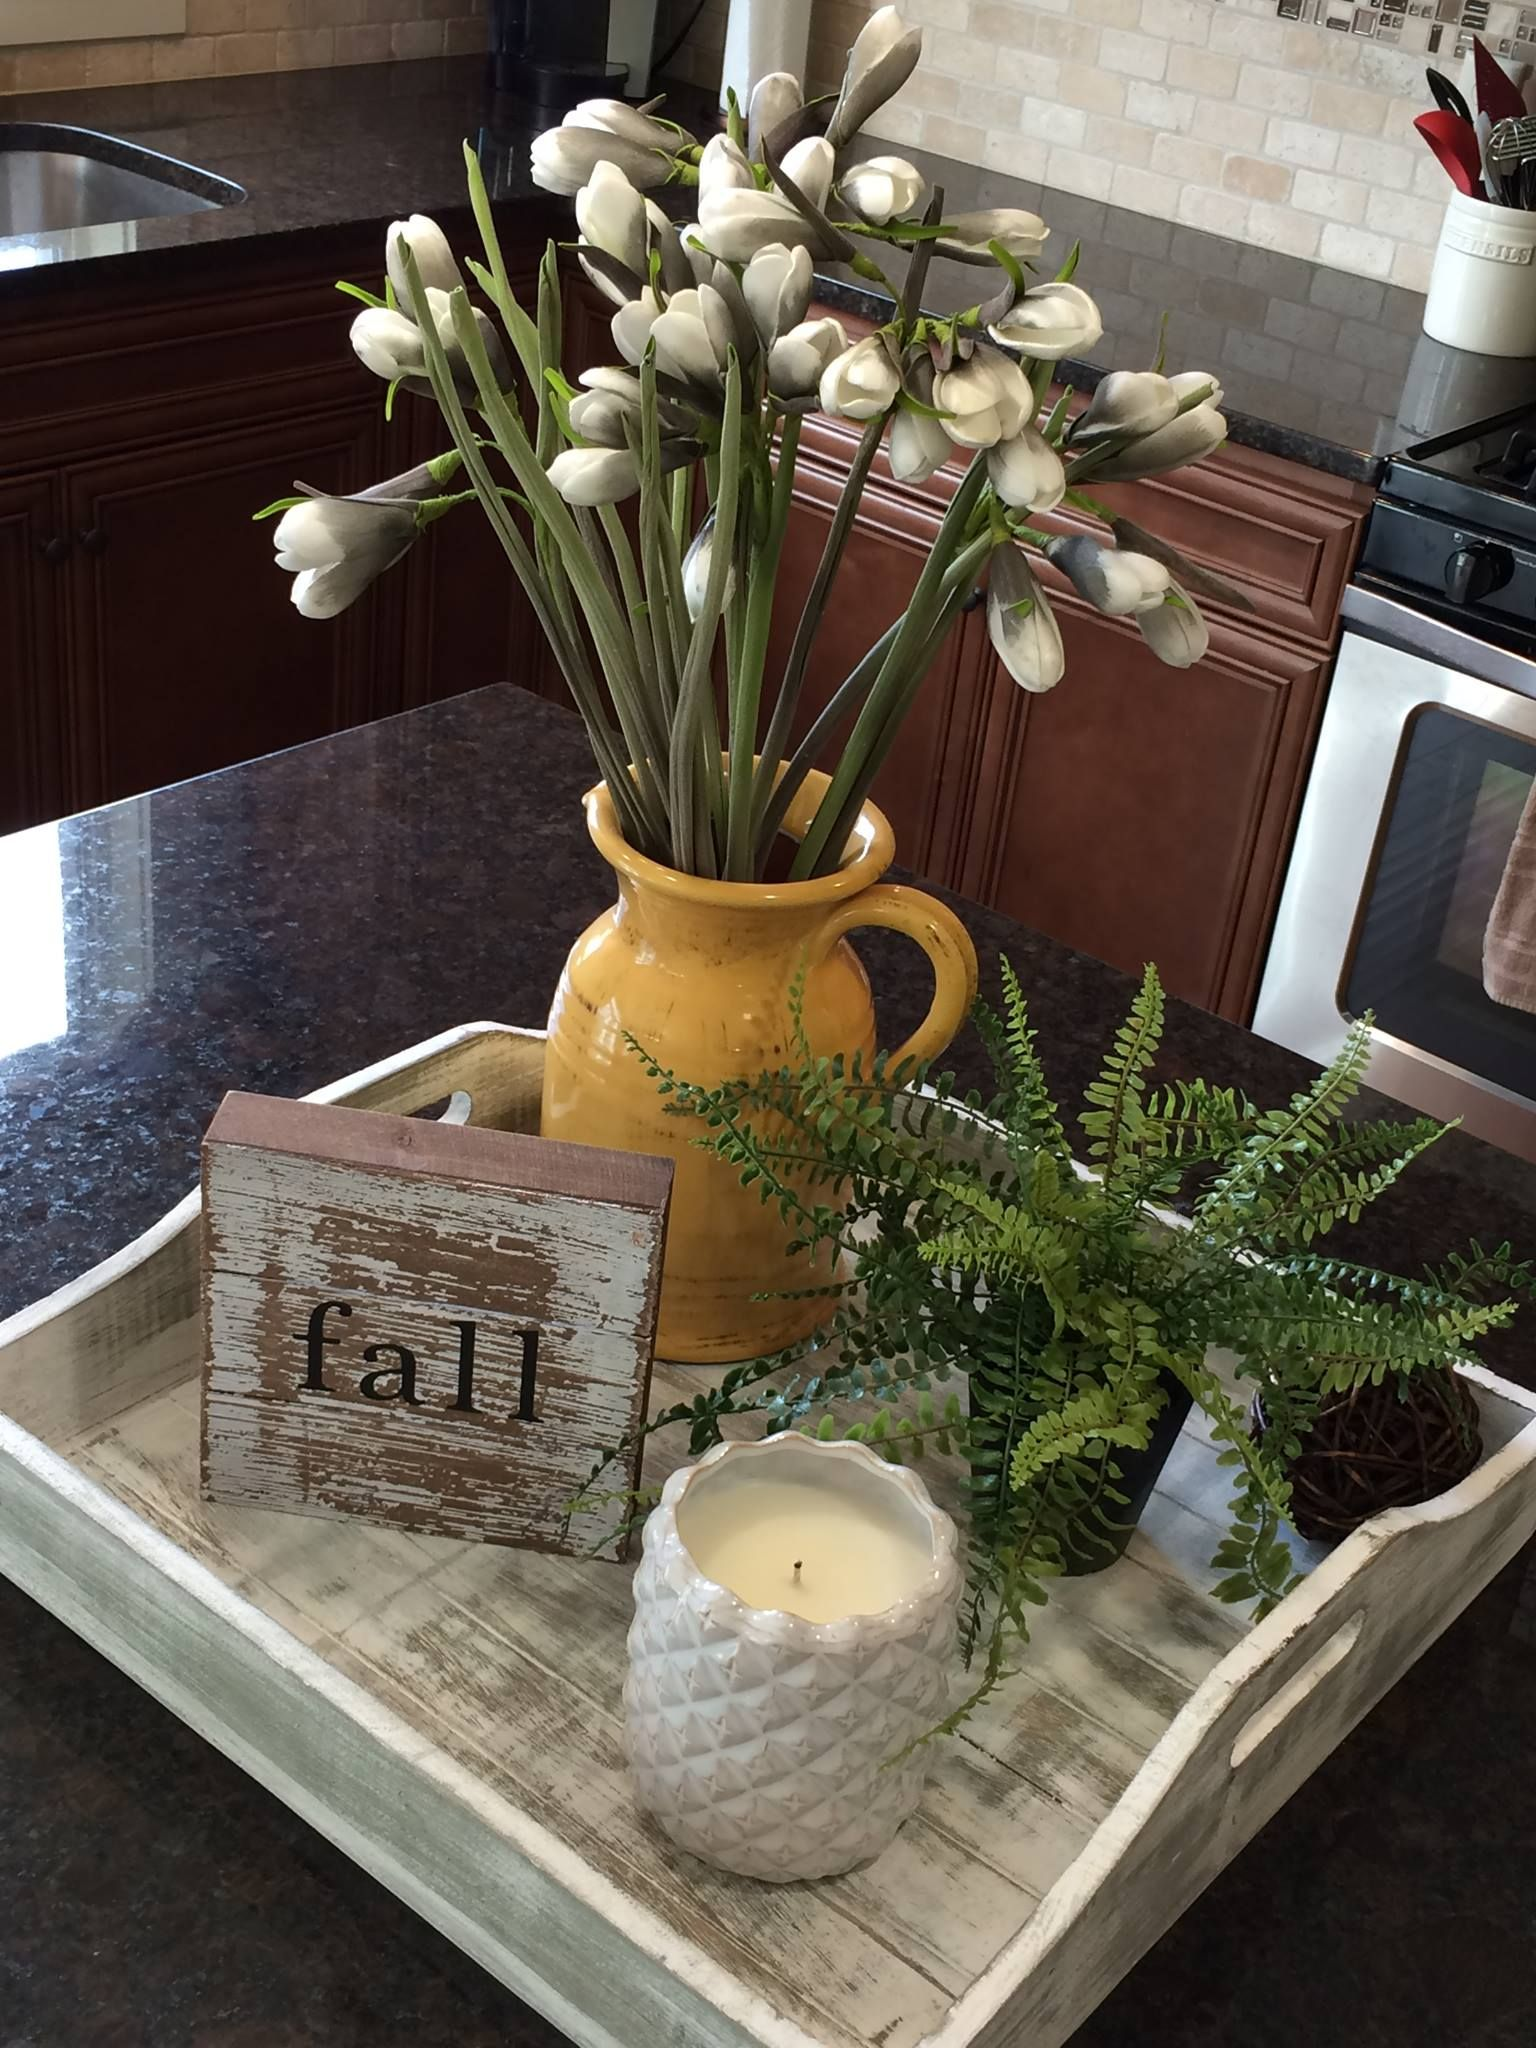 Kitchen Island Centerpiece Love This Decor Idea For A Kitchen Island Or Peninsula Tray Makes